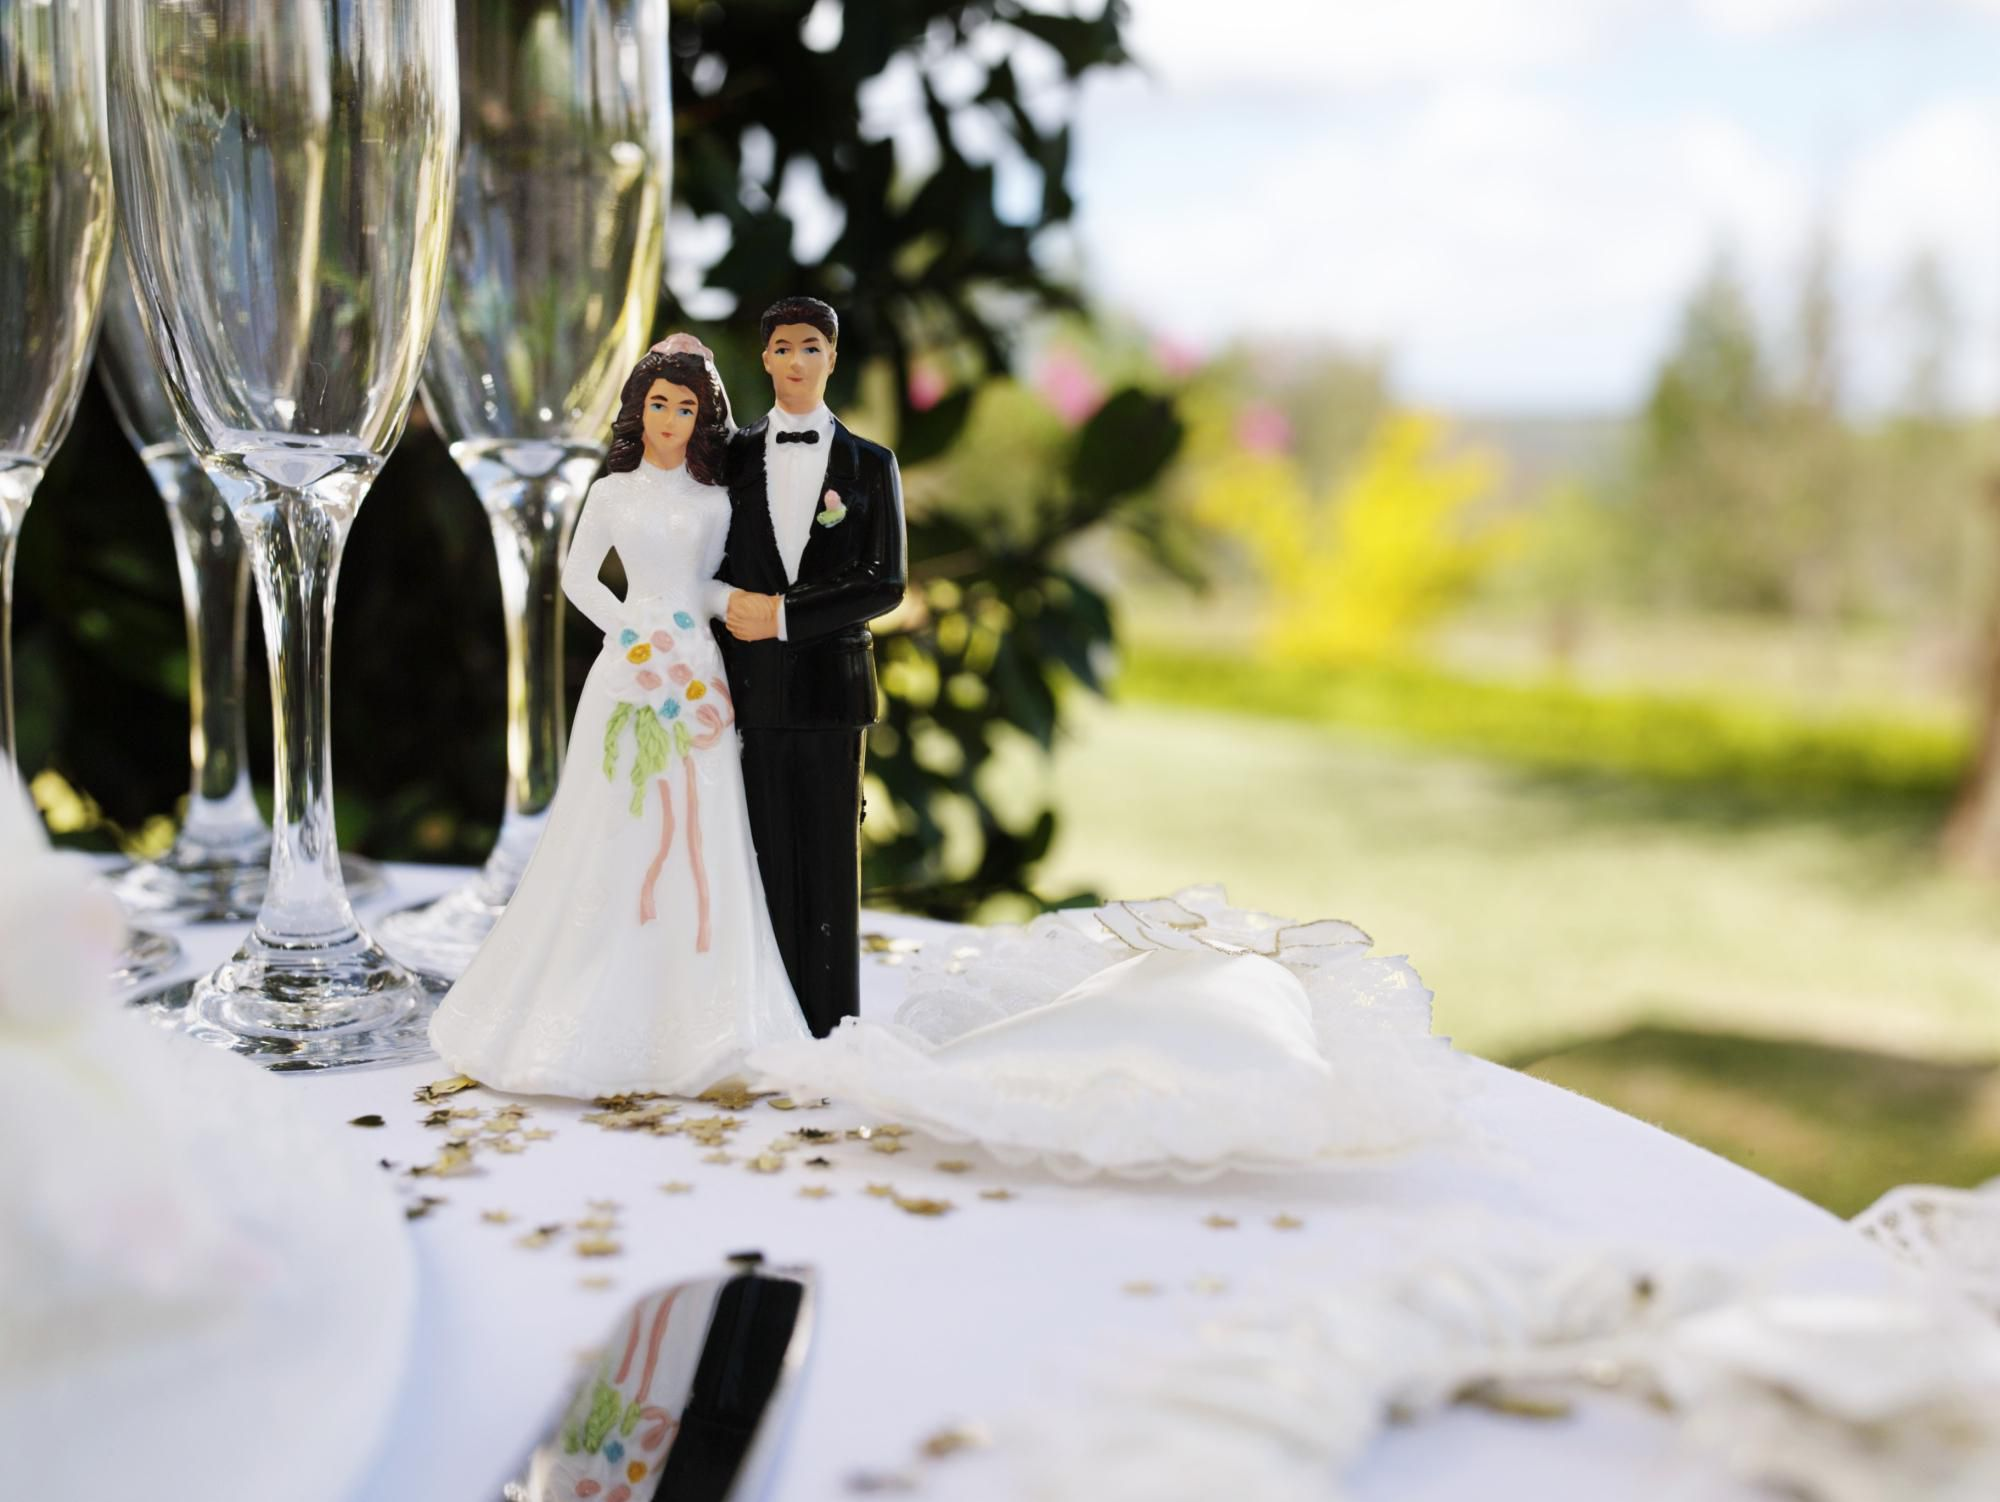 Learn About Wedding Planner Costs Can You Afford the Cost of